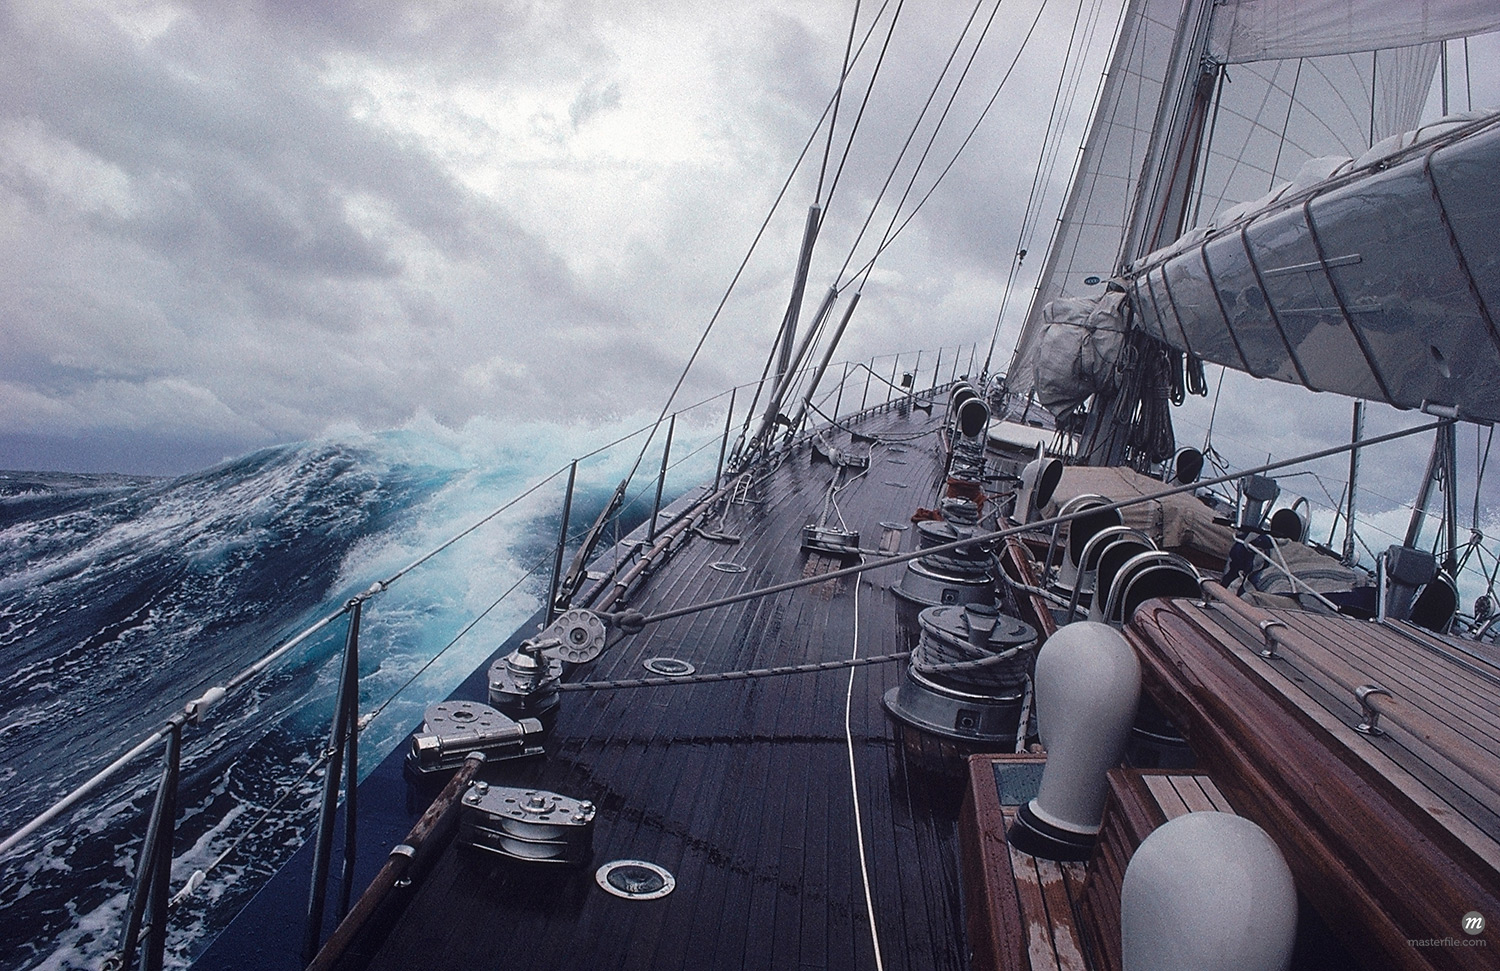 Yacht Endeavour Sailing Through Stormy Seas, Atlantic Ocean  © Michael Eudenbach / Masterfile